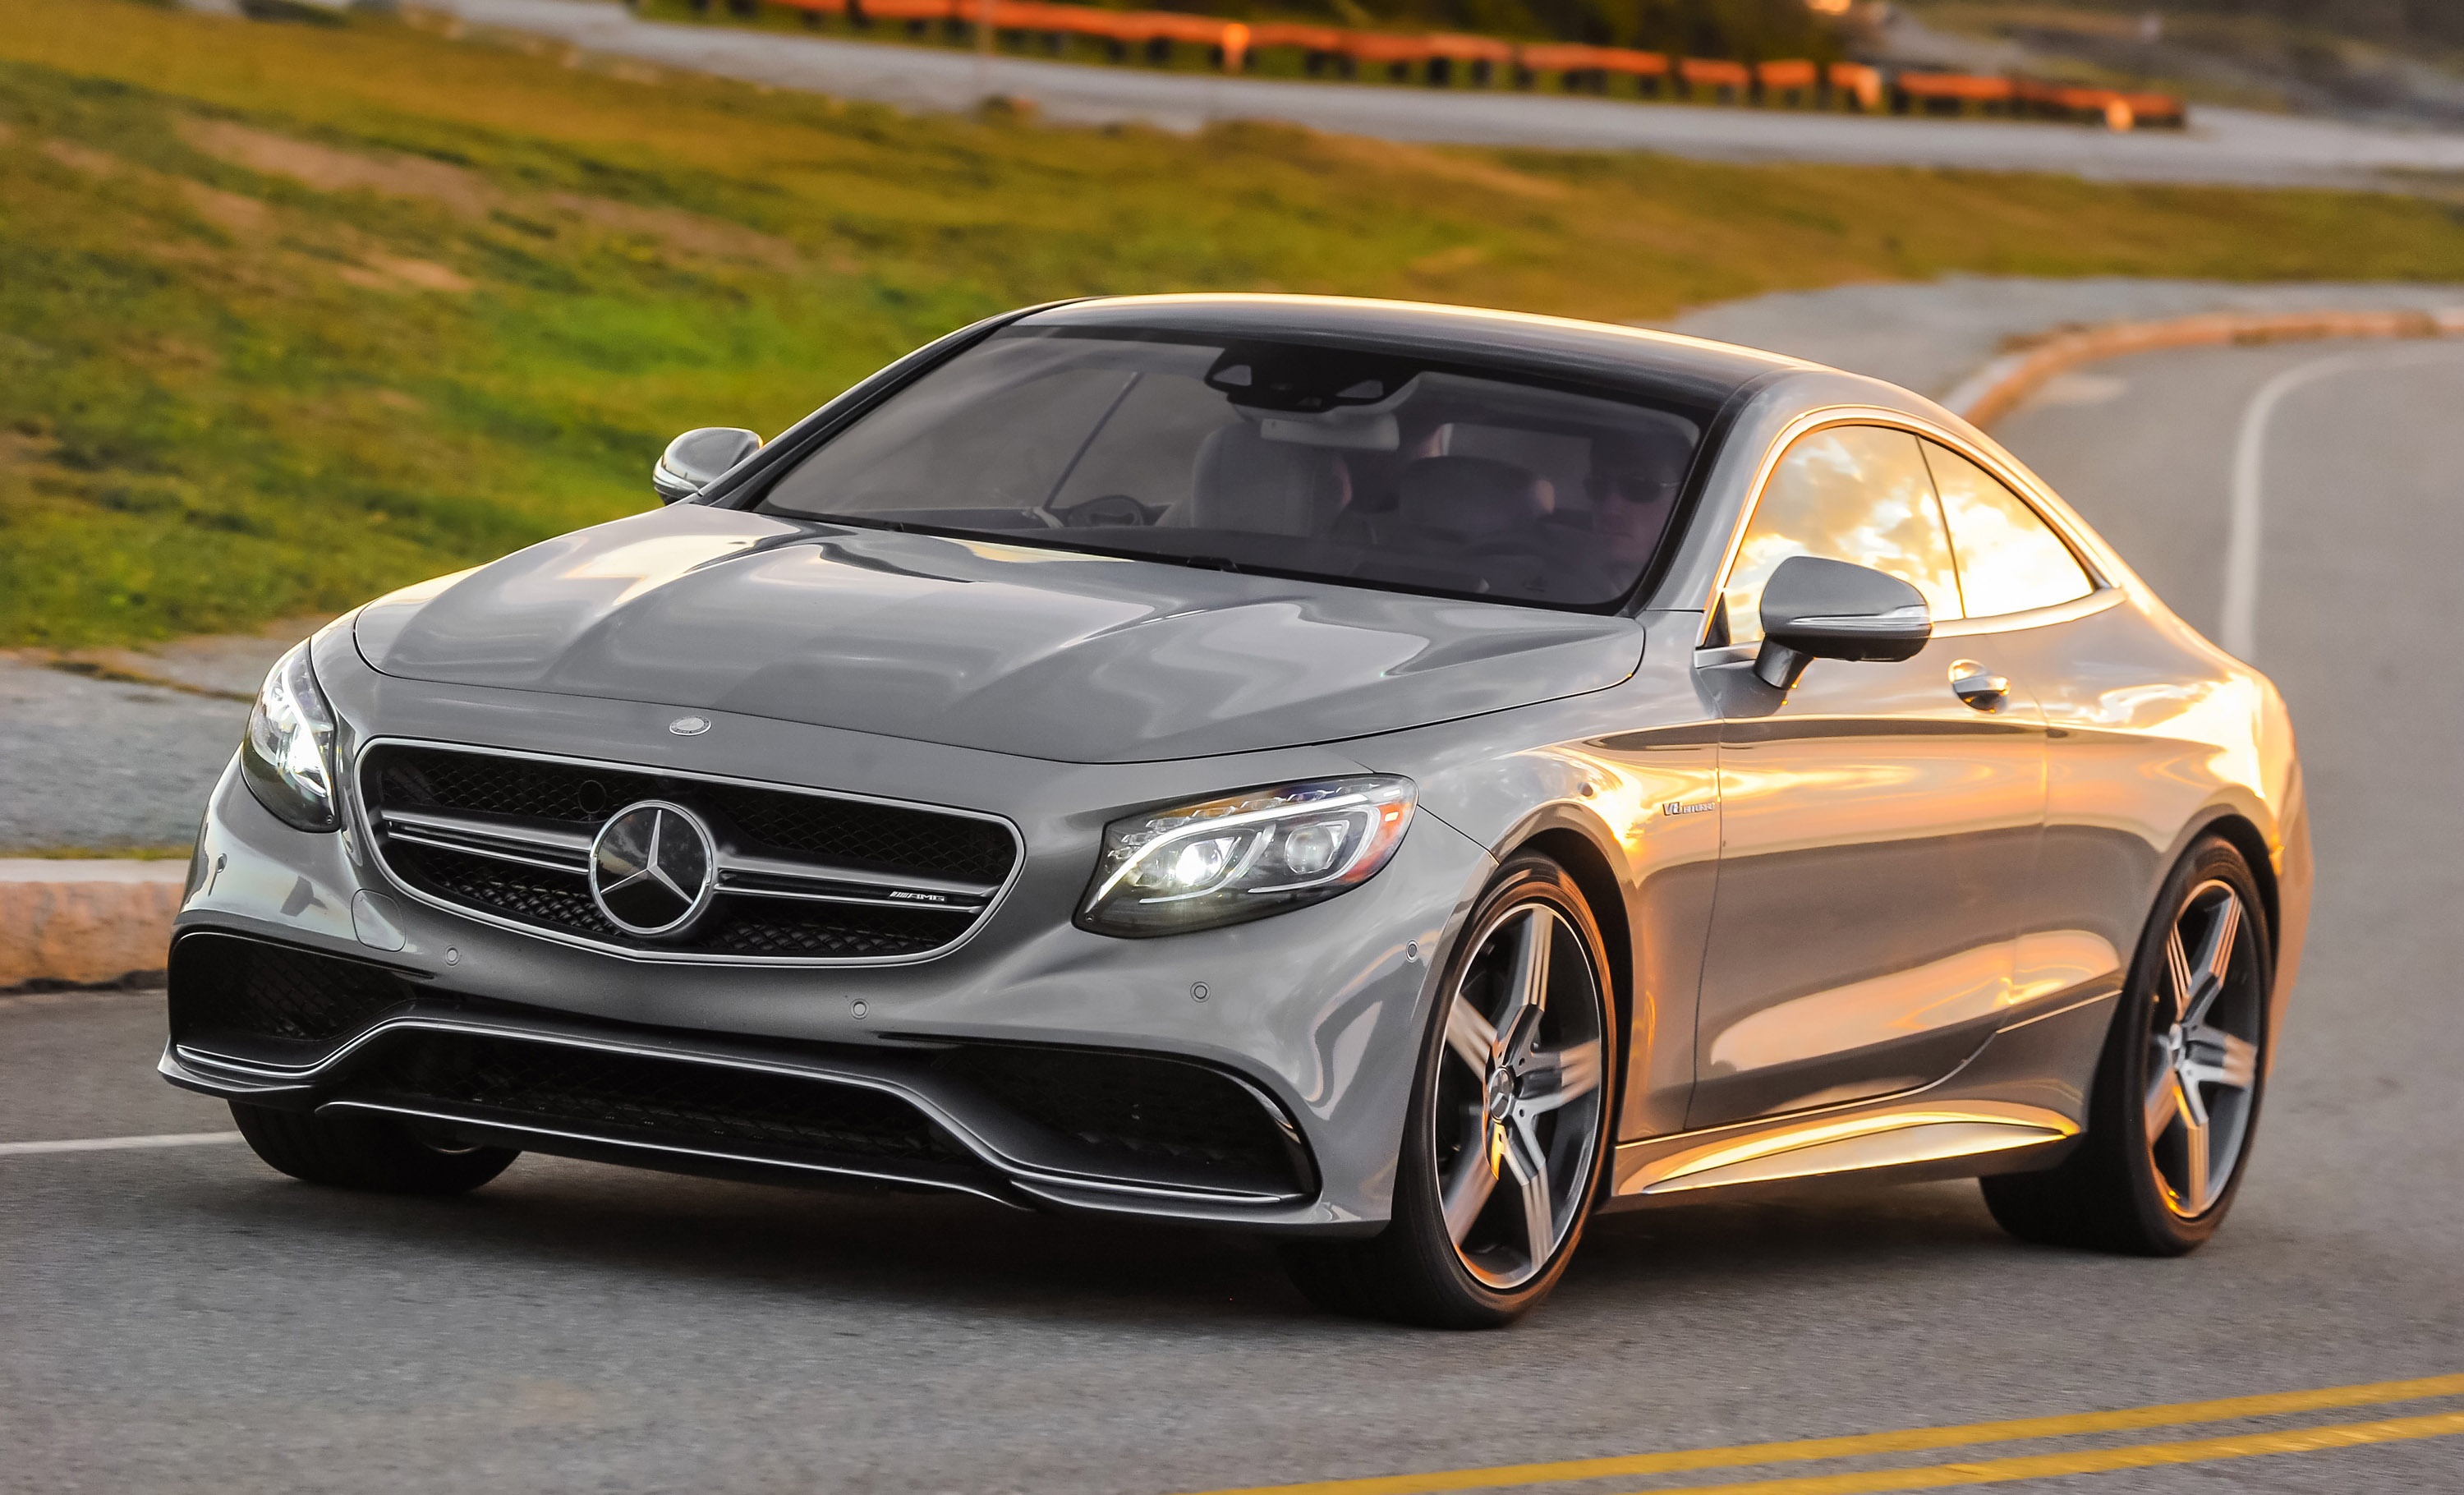 Meet the new 2015 mercedes benz s63 amg 4matic coupe for The price of mercedes benz